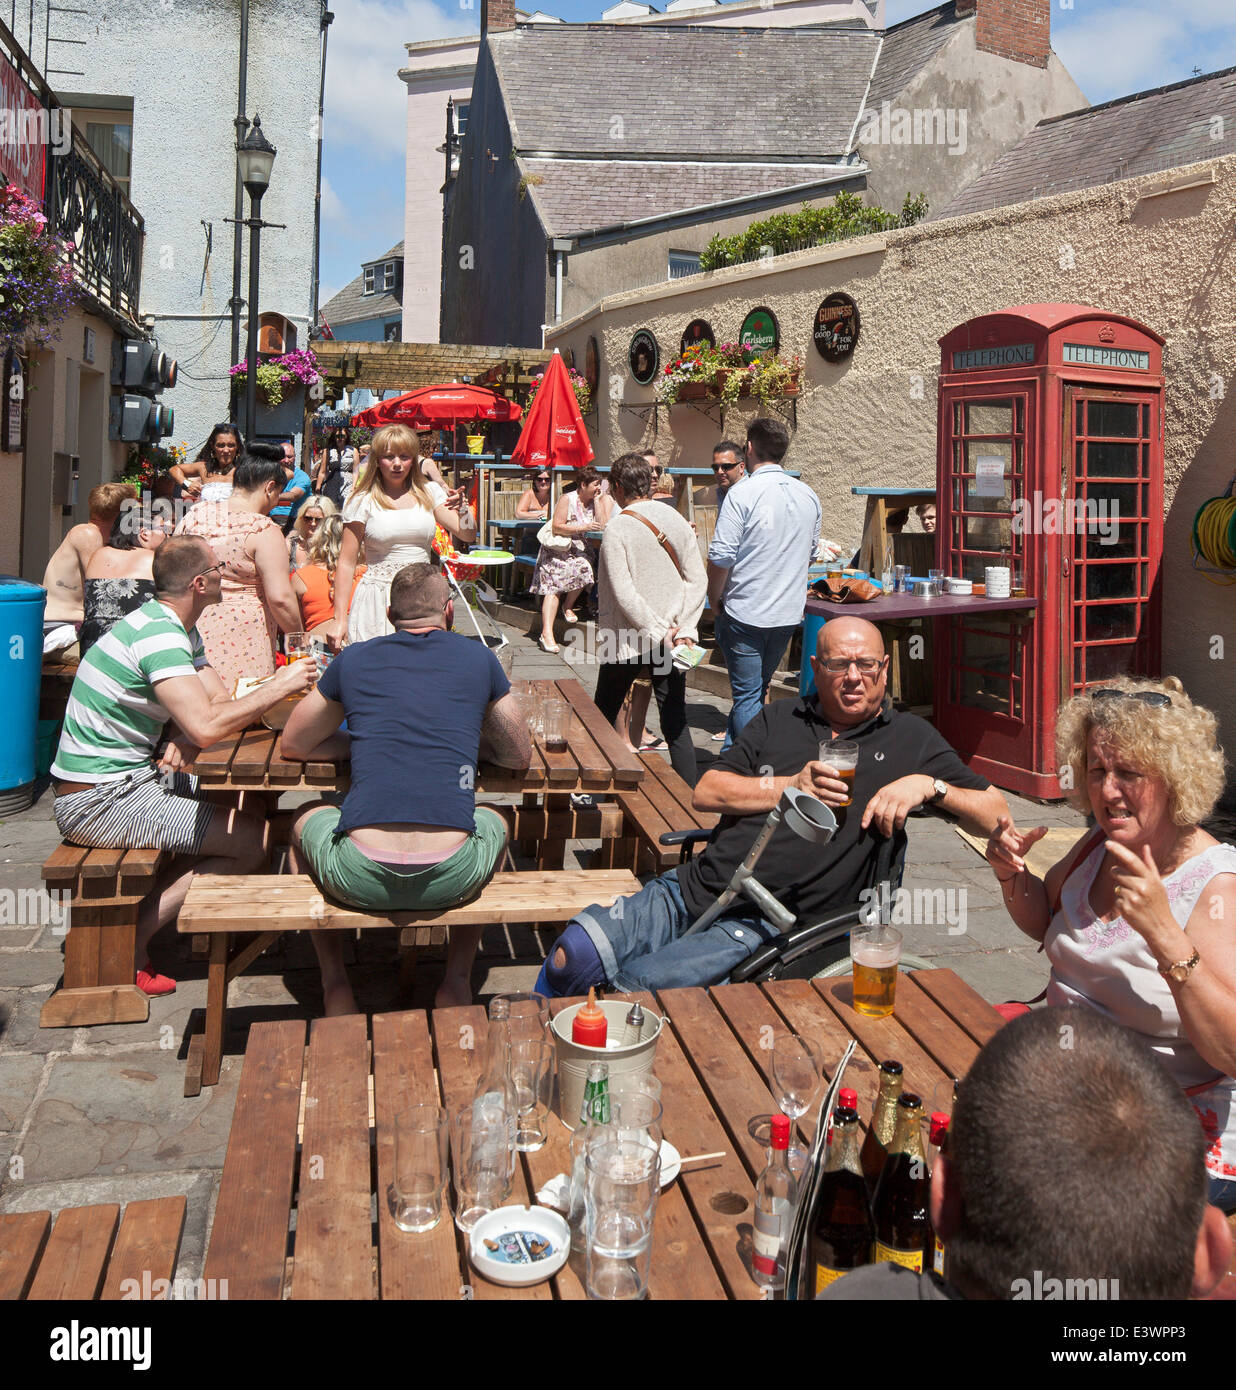 Pub drinkers, Tenby, Wales. - Stock Image